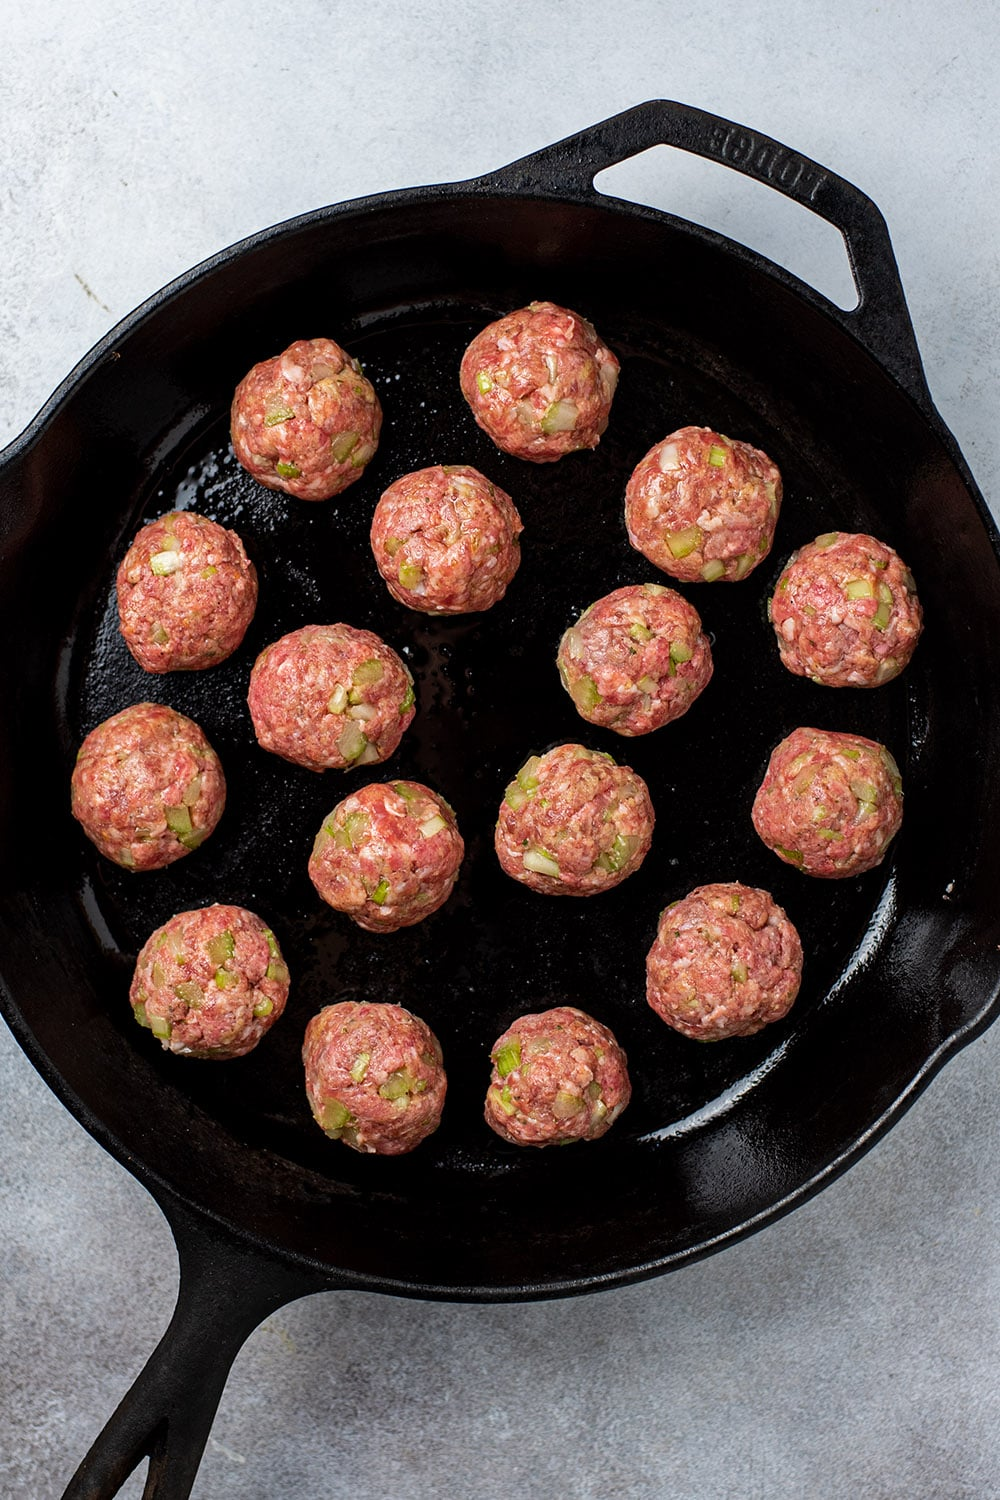 Rolled meatballs in skillet